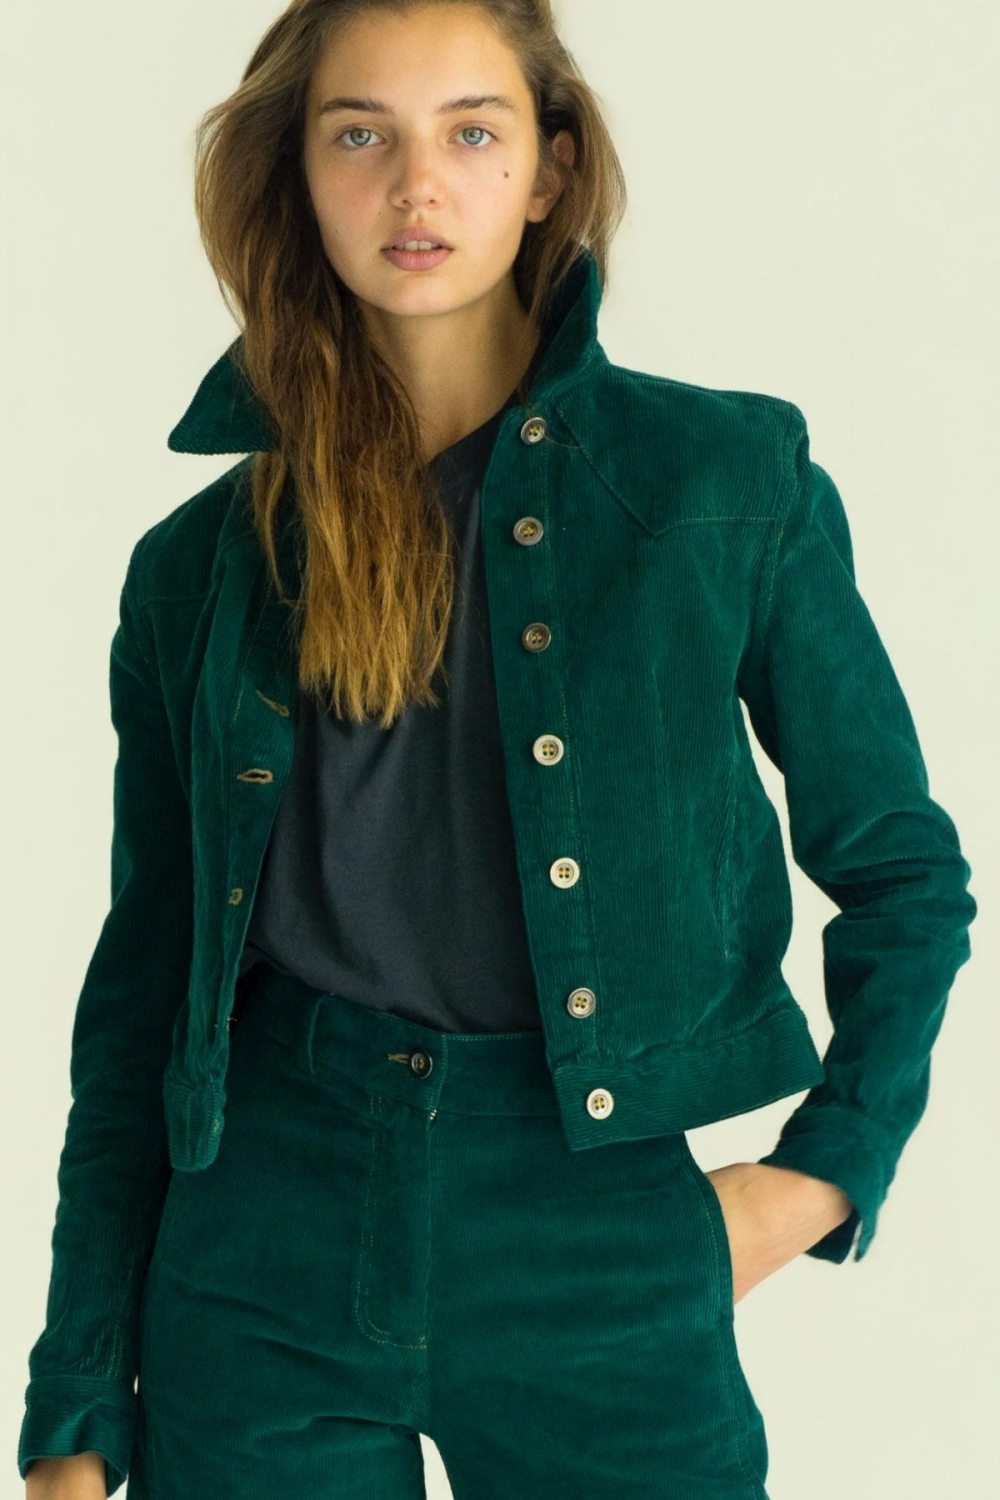 THE TEAL GREEN CORDUROY JACKET